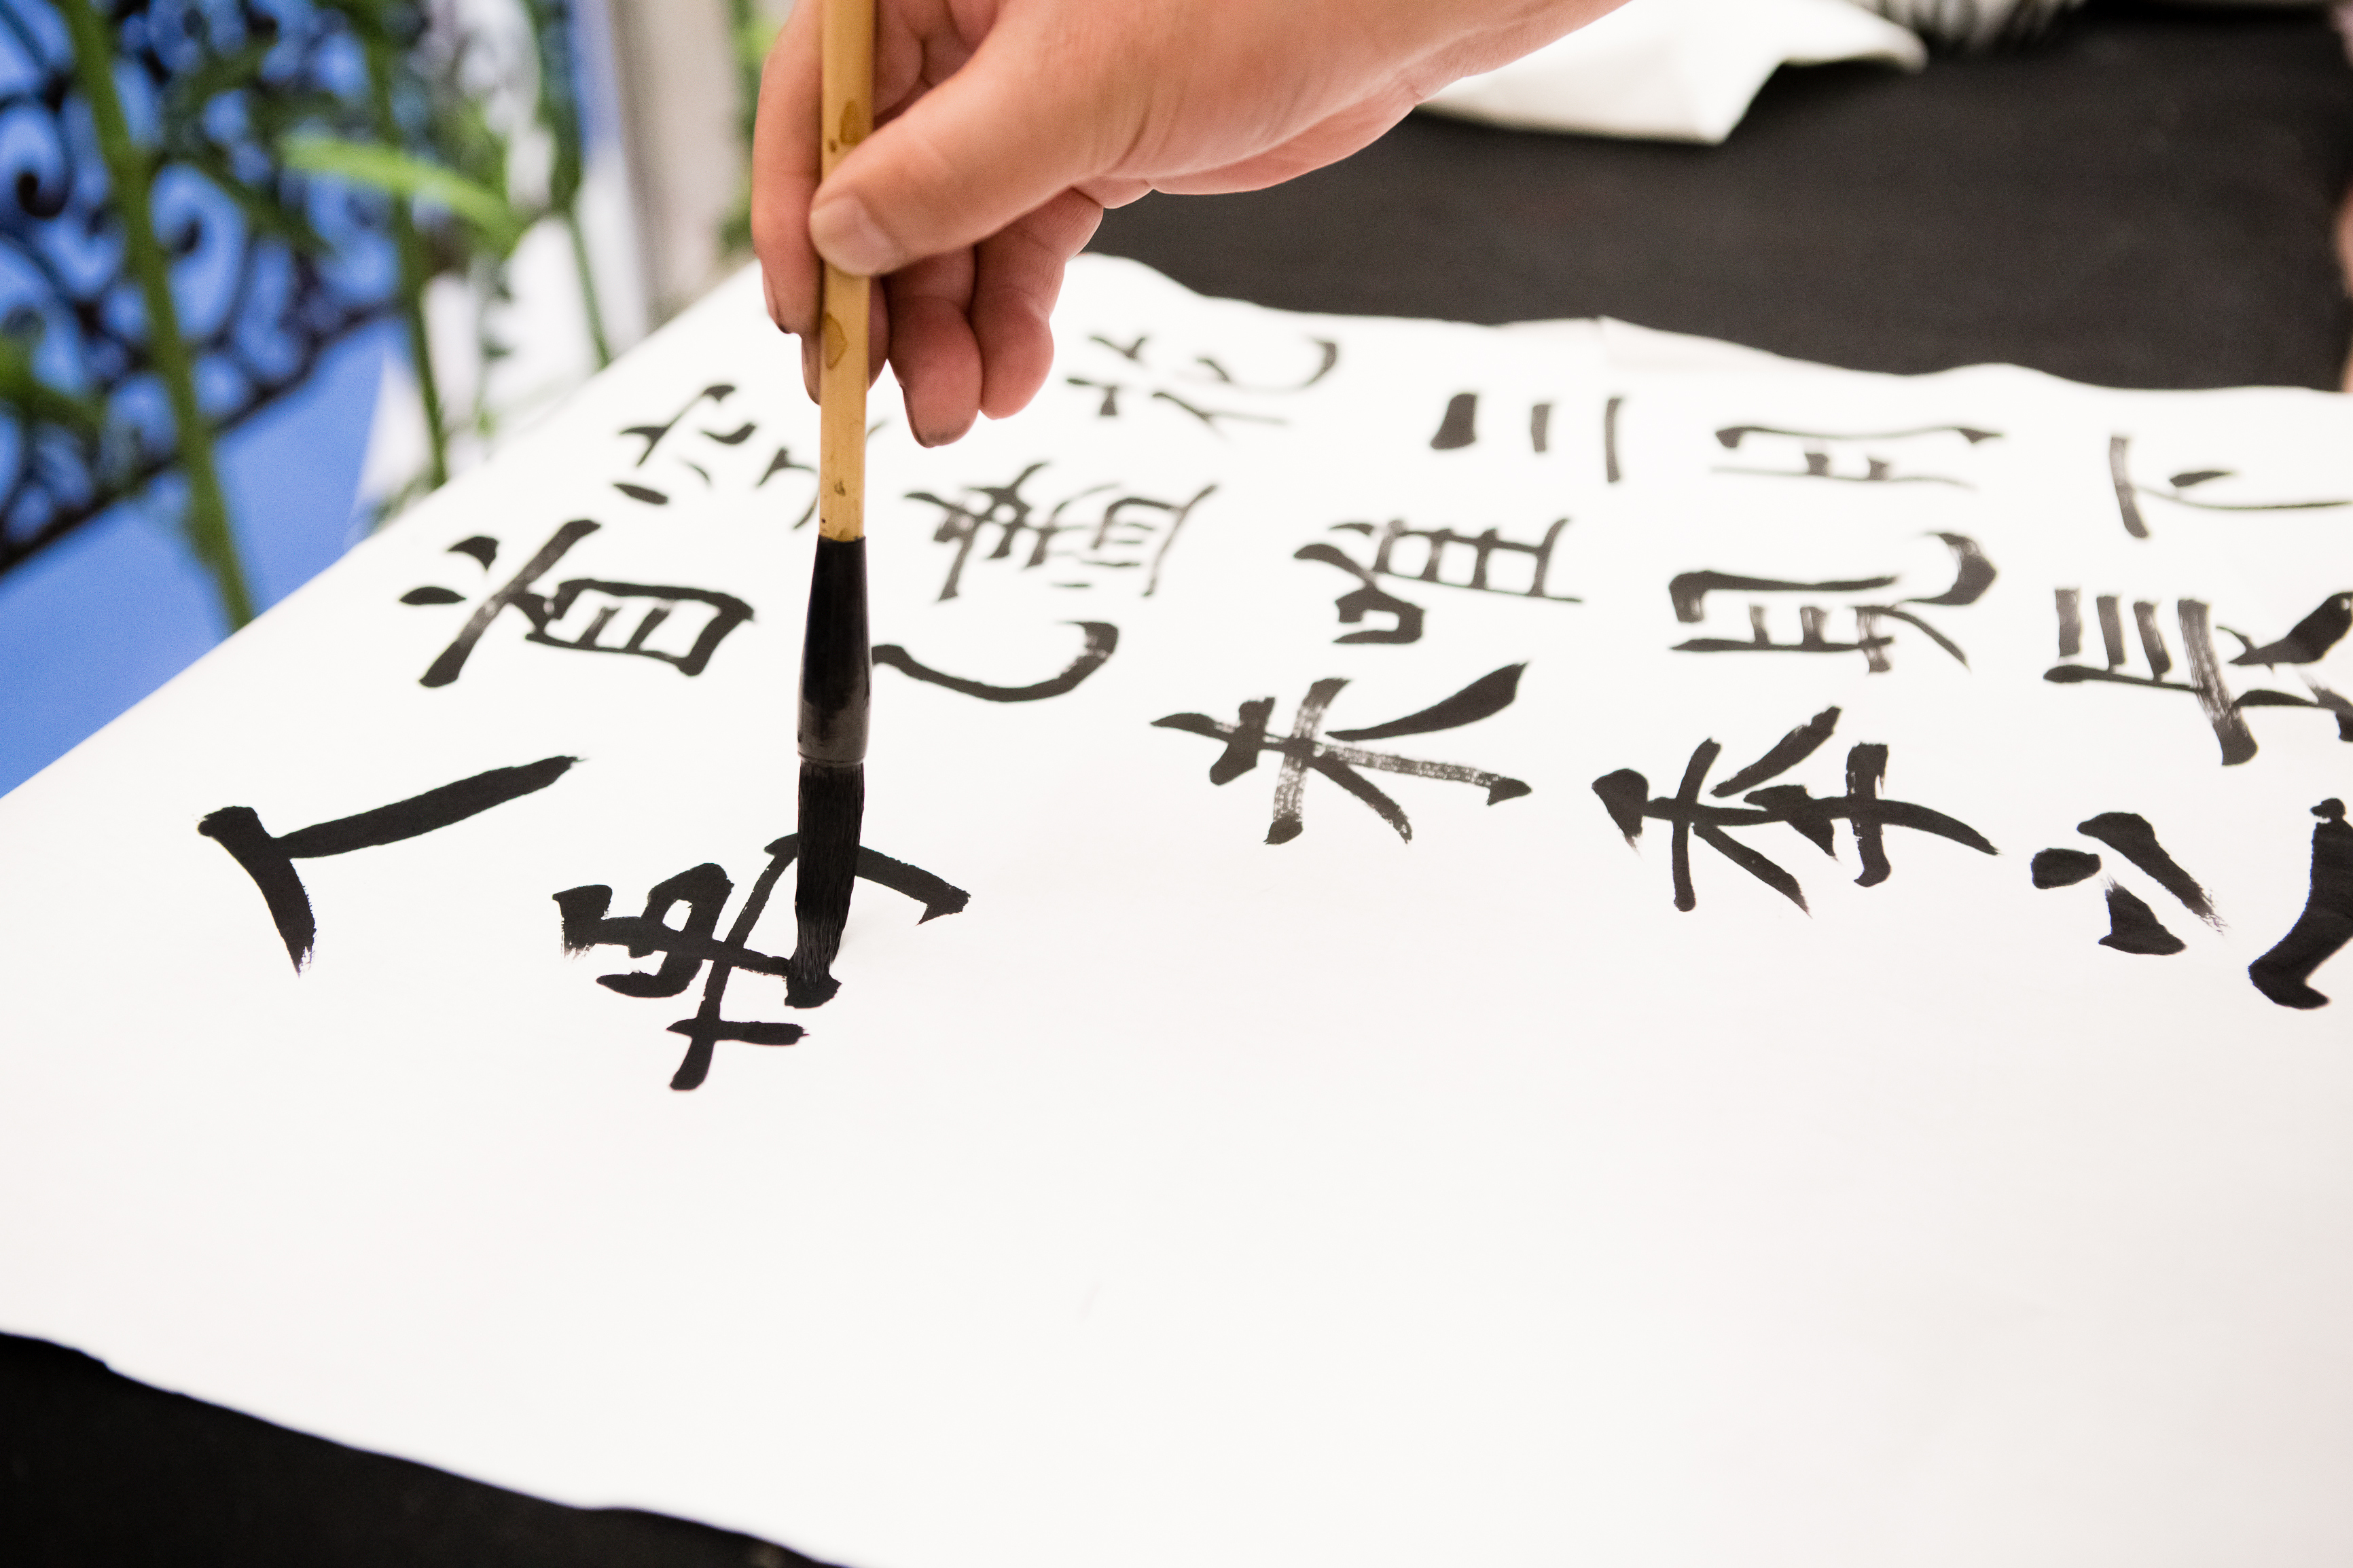 An image of someone doing Chinese calligraphy with a paintbrush.